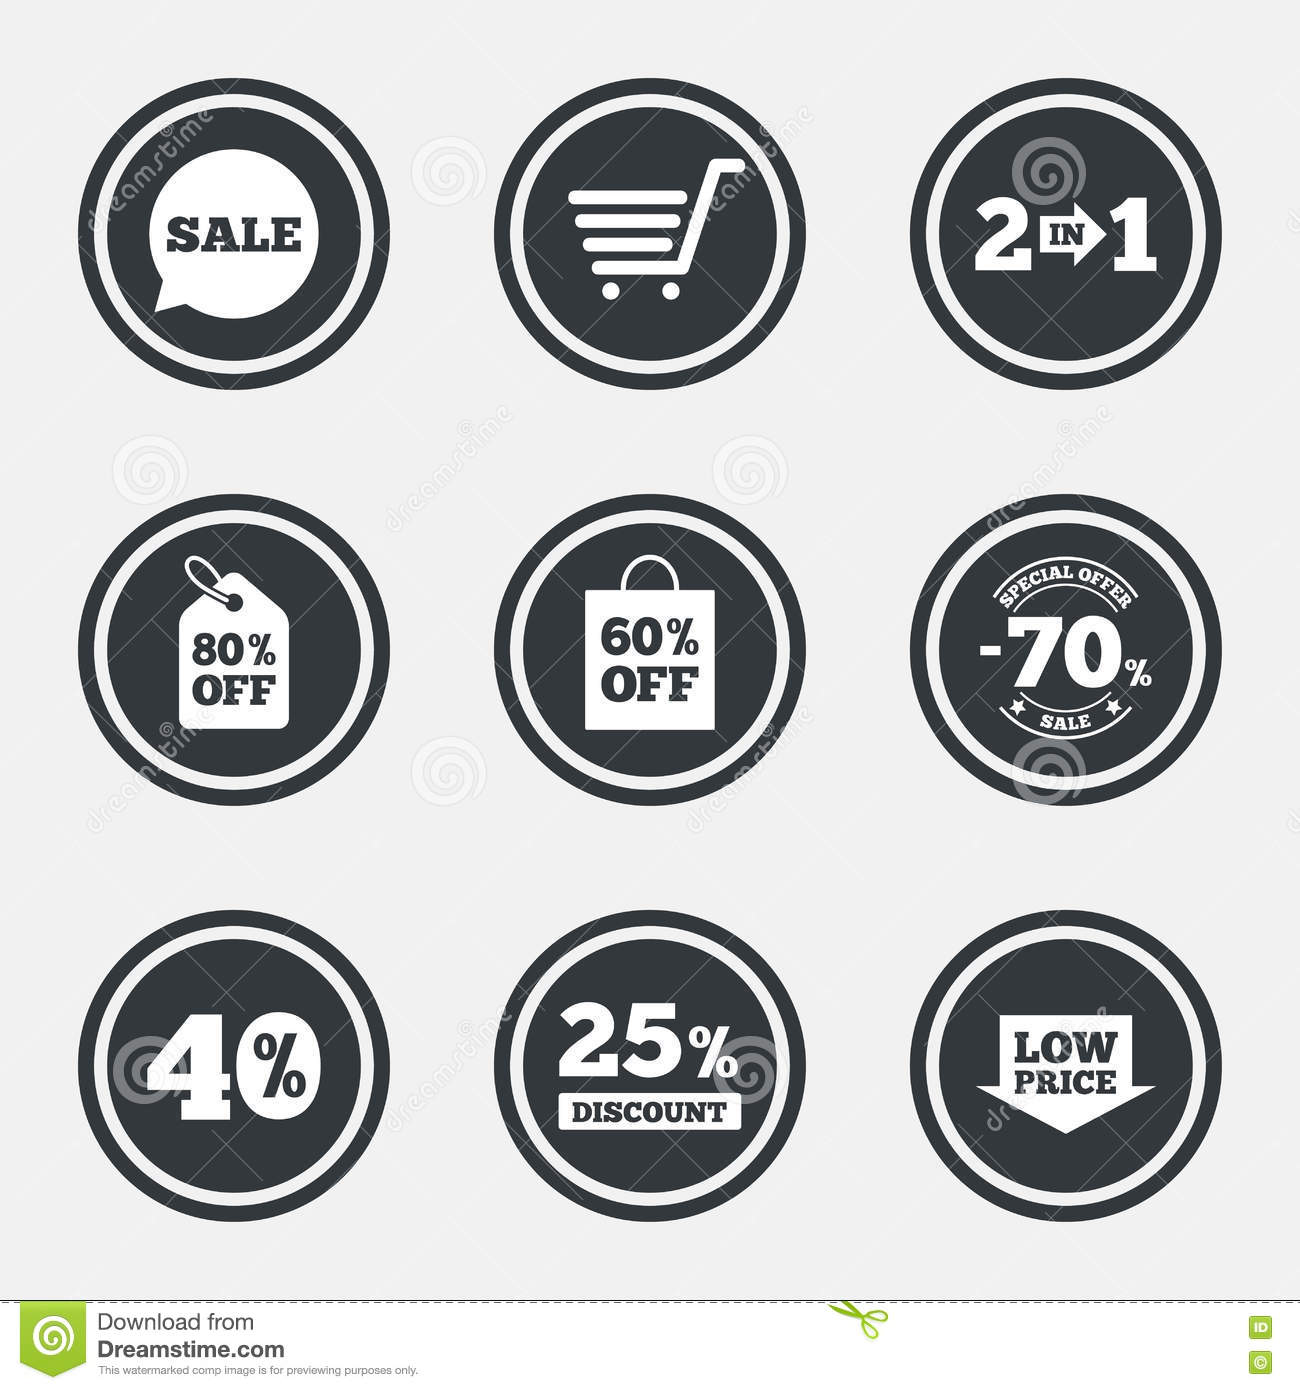 Sale Discounts Icon. Shopping, Deal Signs. Stock Vector ...